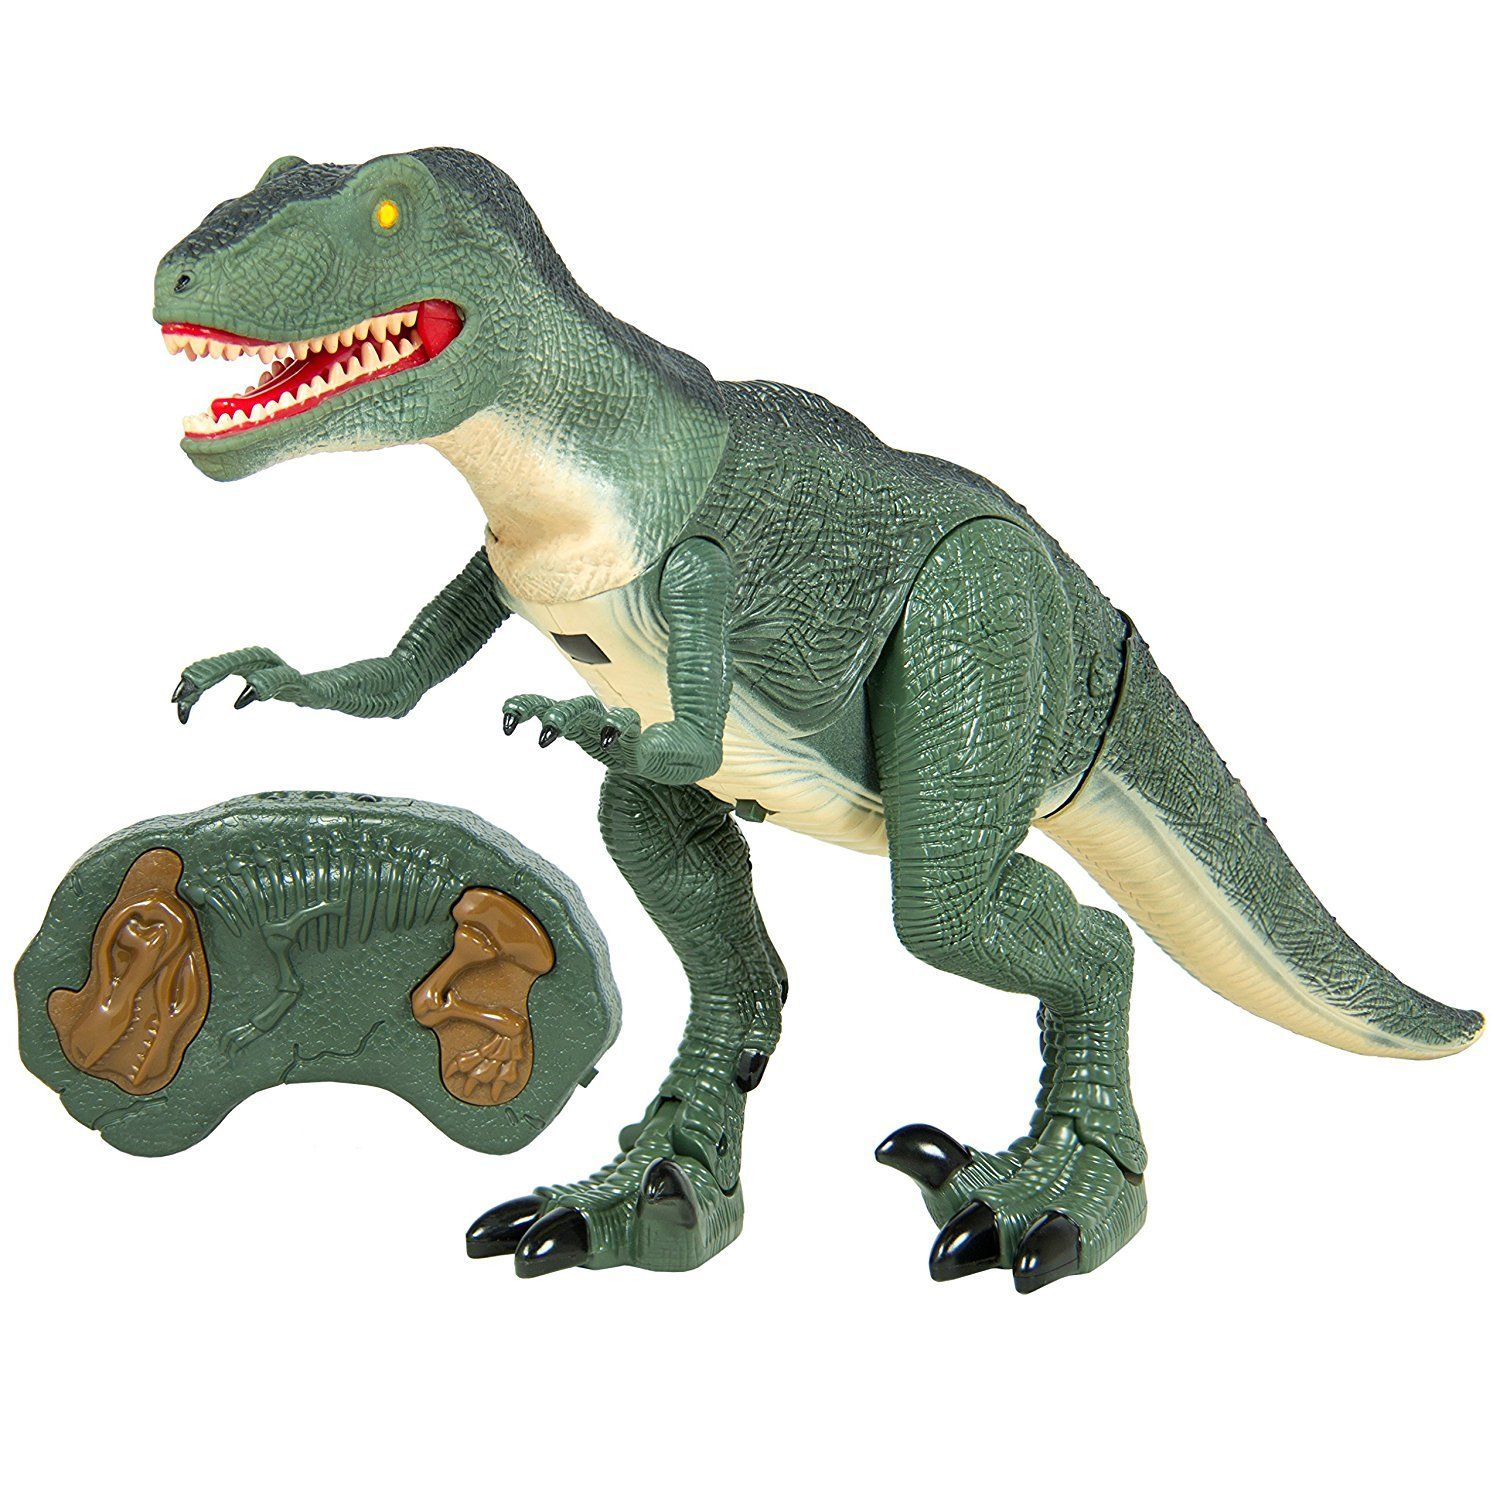 Fanbell Remote Control Velociraptor Rc Walking Dinosaur Lights And Sounds Kid Pet Toy Animal Click Image For More D Animals For Kids Dinosaur Toys Dinosaur